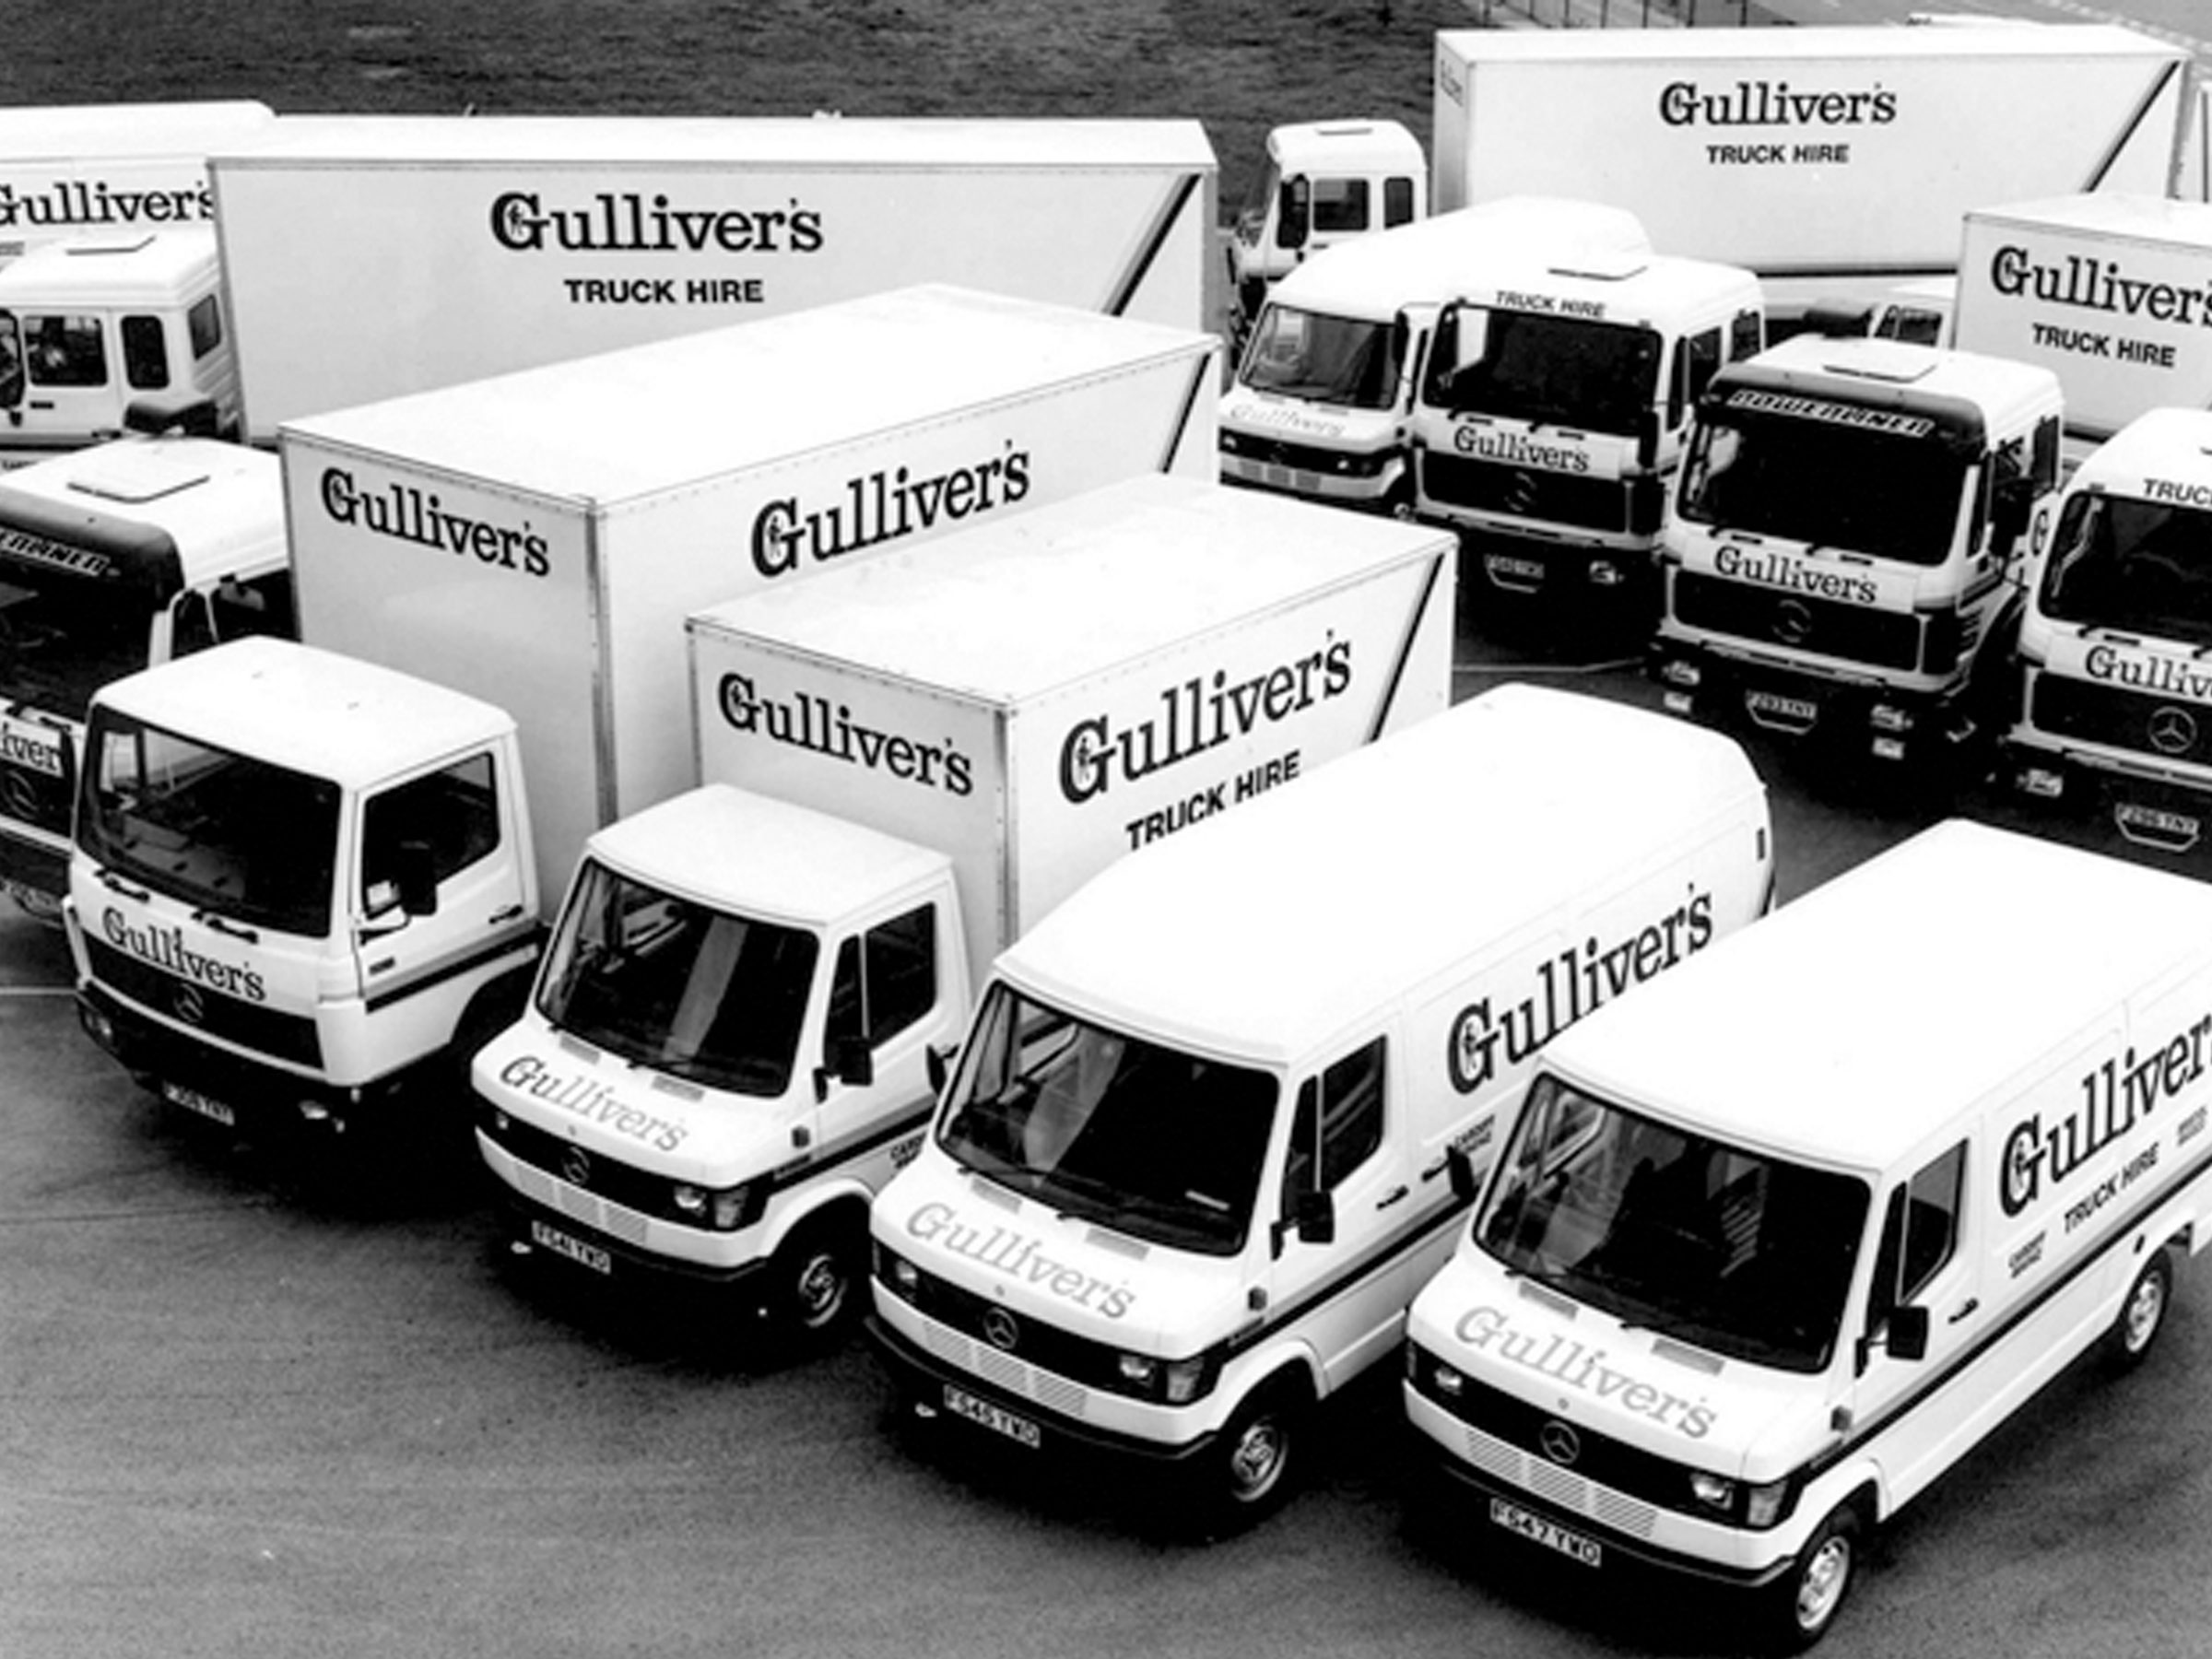 'A promise is a promise' at Gulliver's Truck Hire